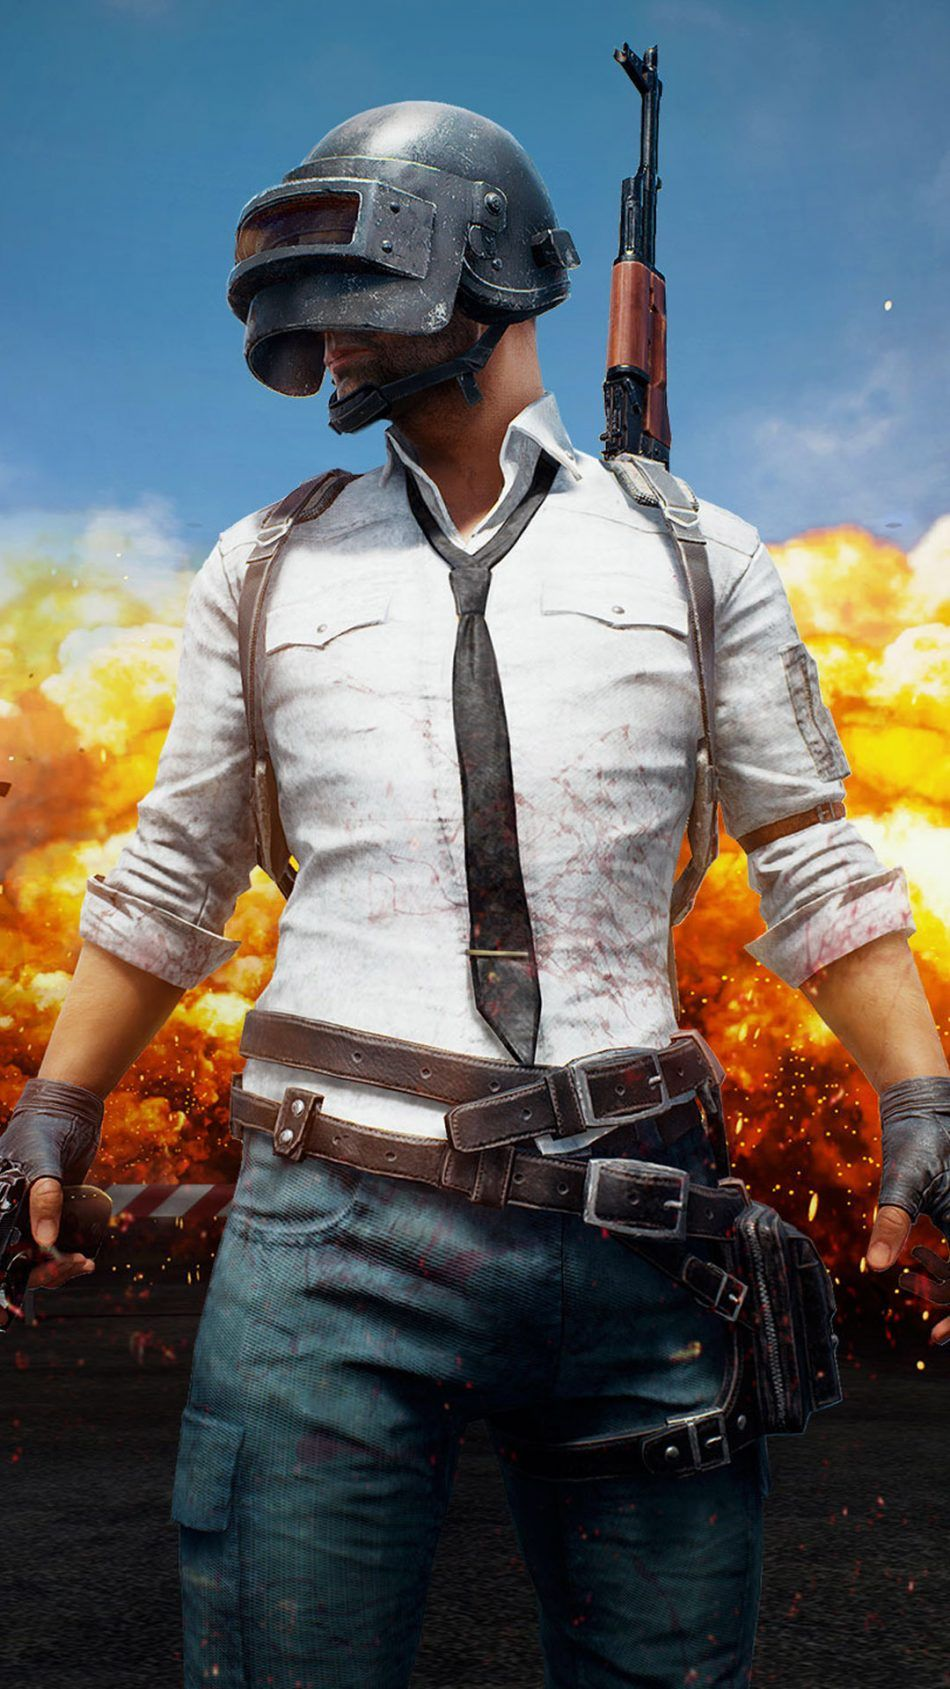 PlayerUnknown's Battlegrounds (PUBG) Game | goku | Mobile wallpaper, Hd wallpapers for mobile ...